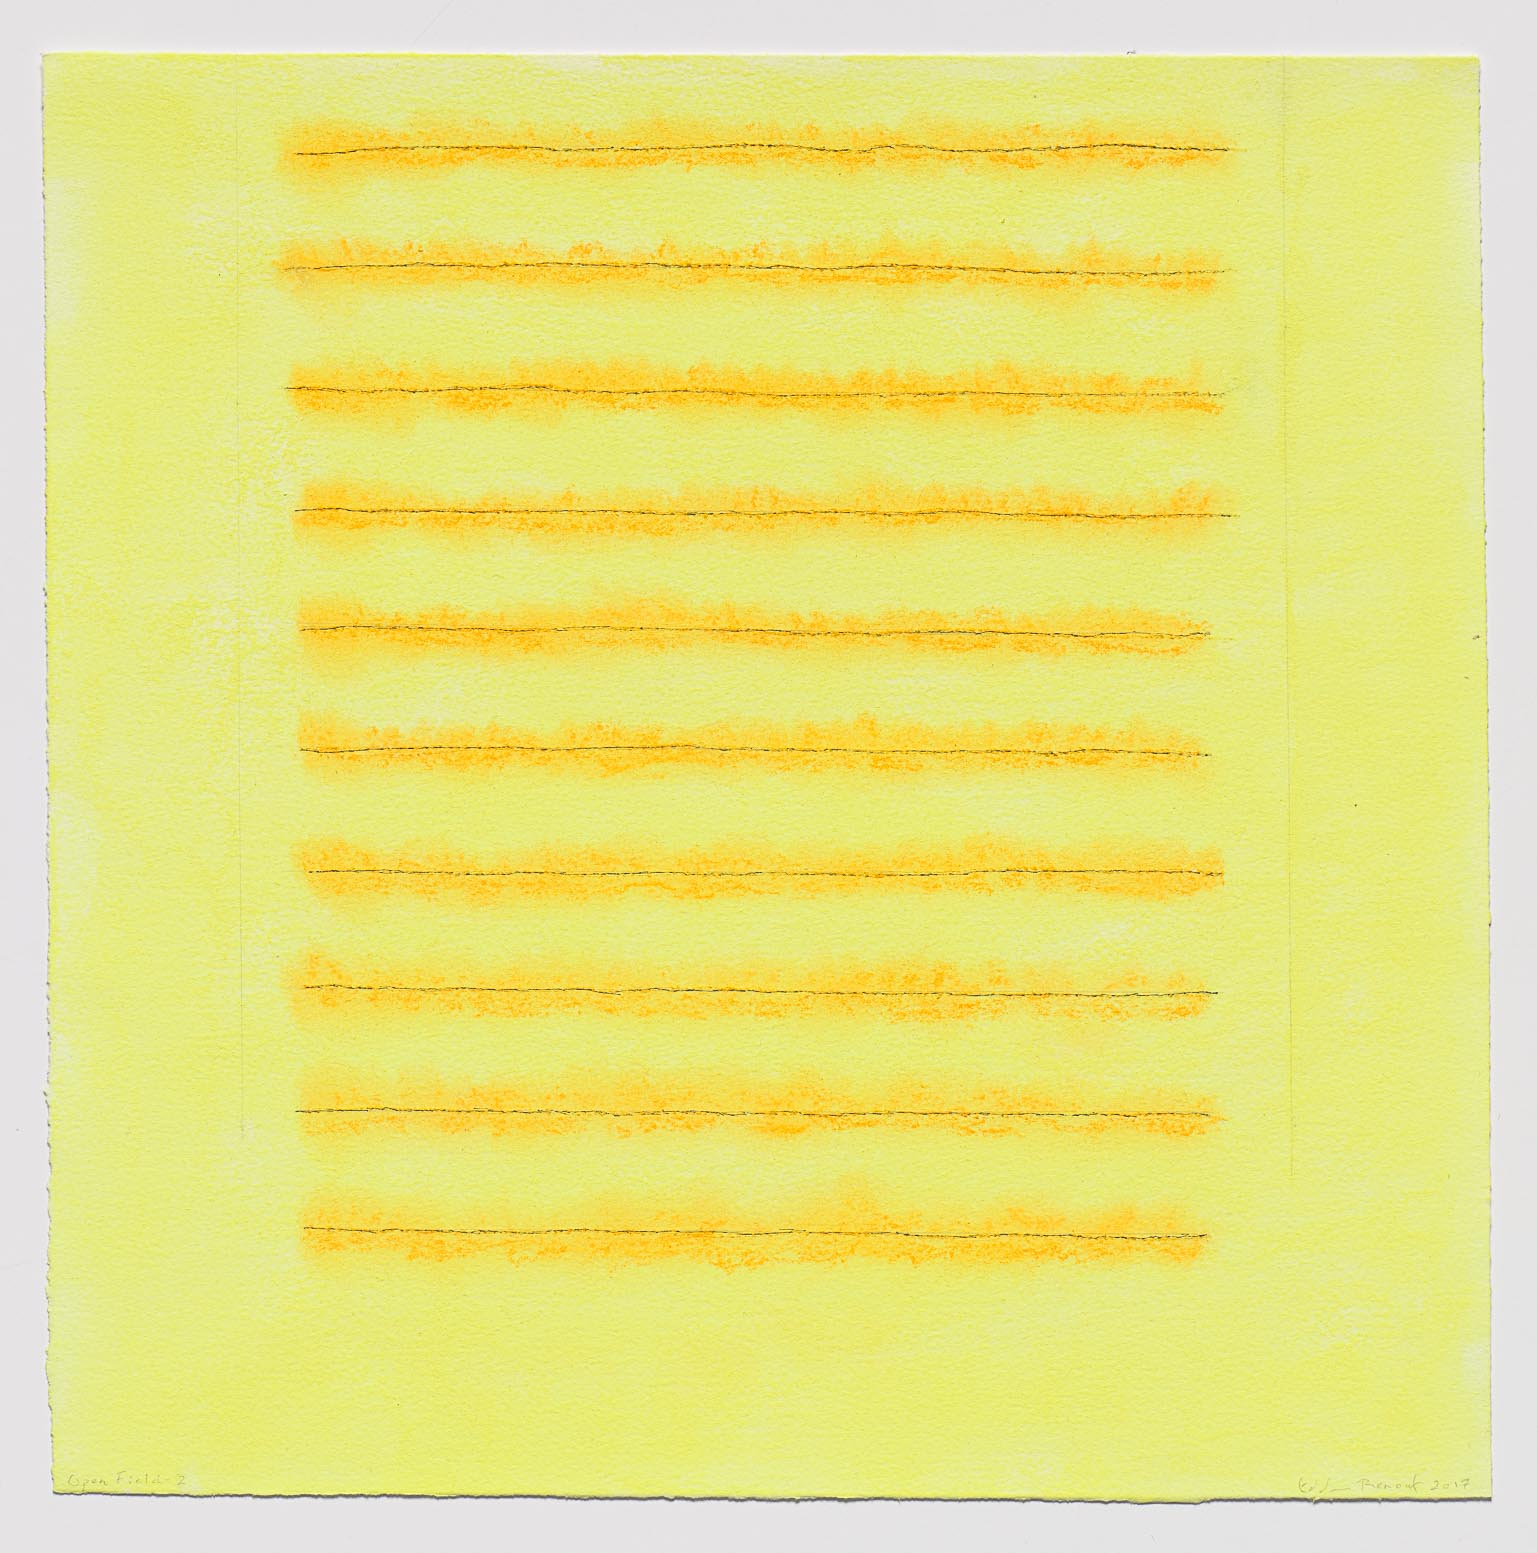 Edda Renouf (American, b. 1943)  Open Field-2,  from  Open Field Series , 2017 Incised lines, ink, graphite, and yellow pastel chalk on Arches paper 15 x 15 inches